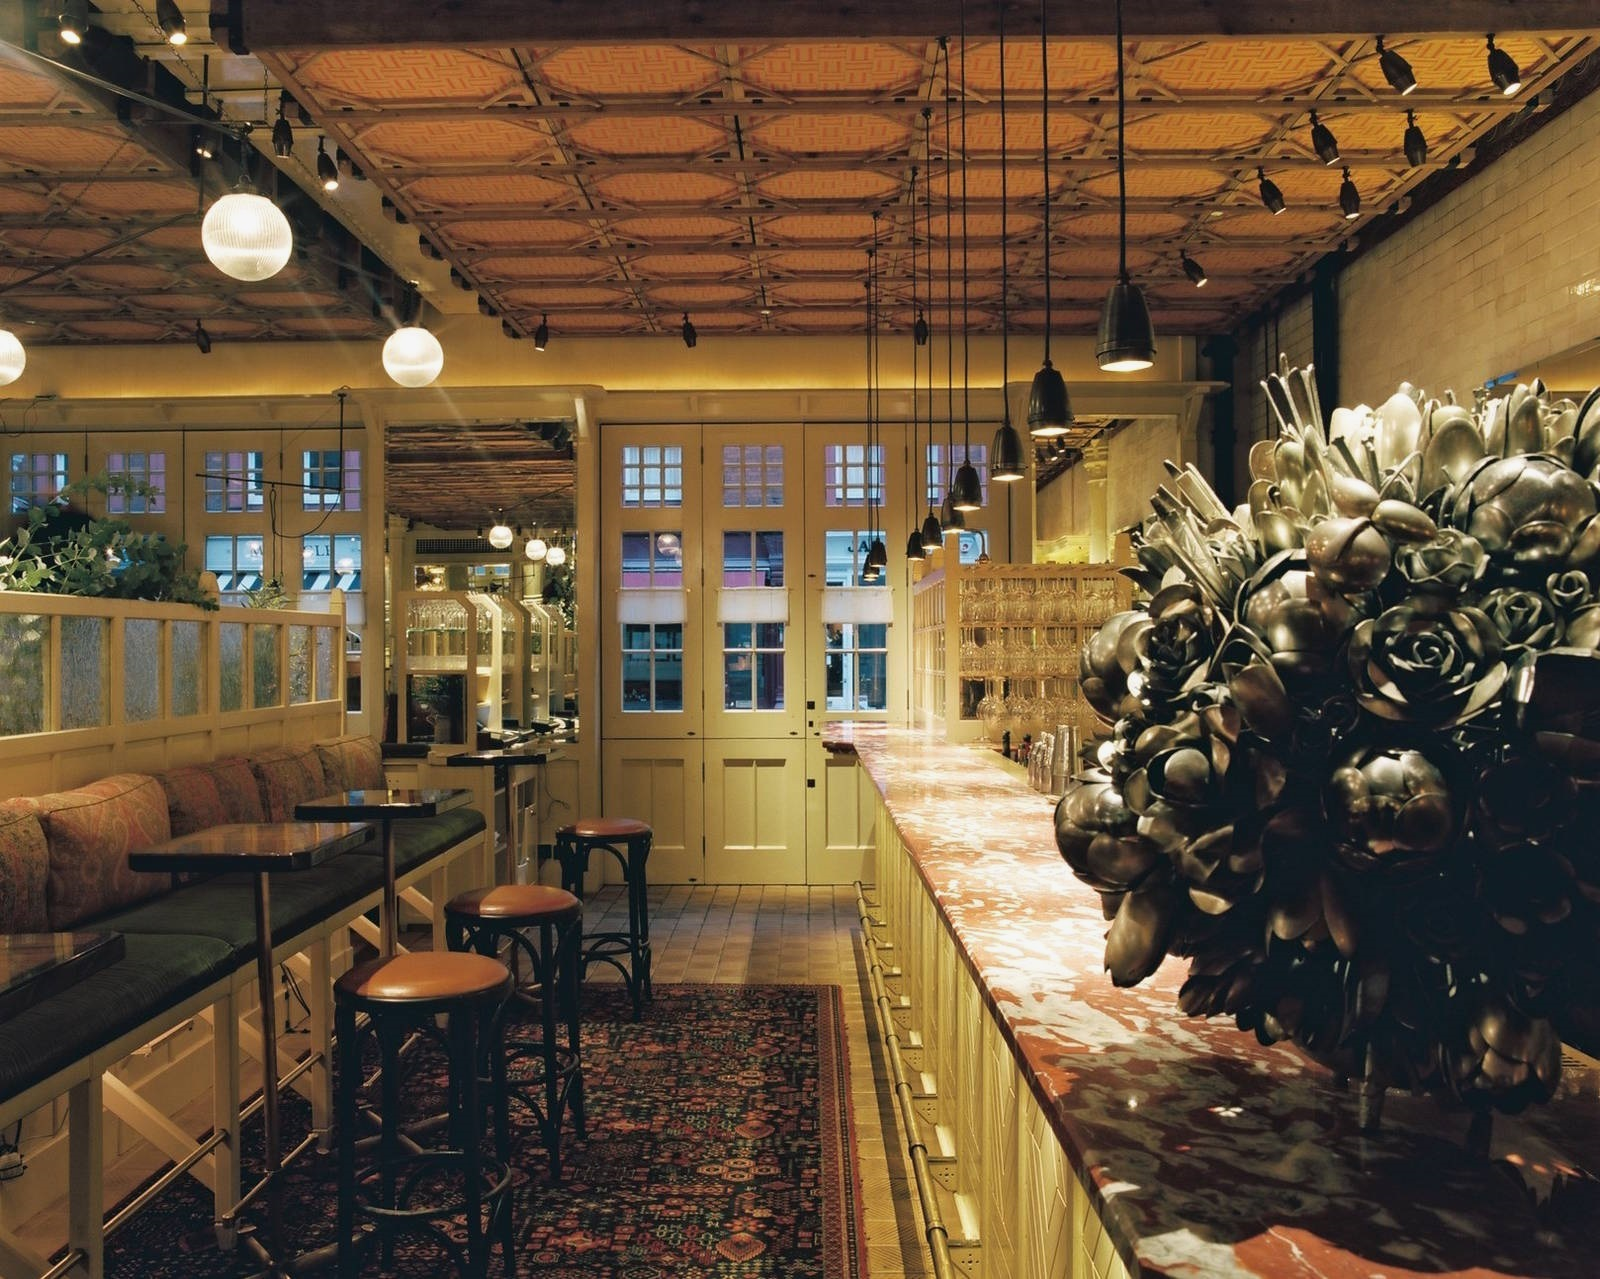 CHILTERN FIREHOUSE - Explore Chiltern Firehouse's menu of reimagined classics and bold new flavours, with an American accent and an emphasis on seasonality and healthy eating.Address: 1 Chiltern Street, Marylebone, London W1U 7PA